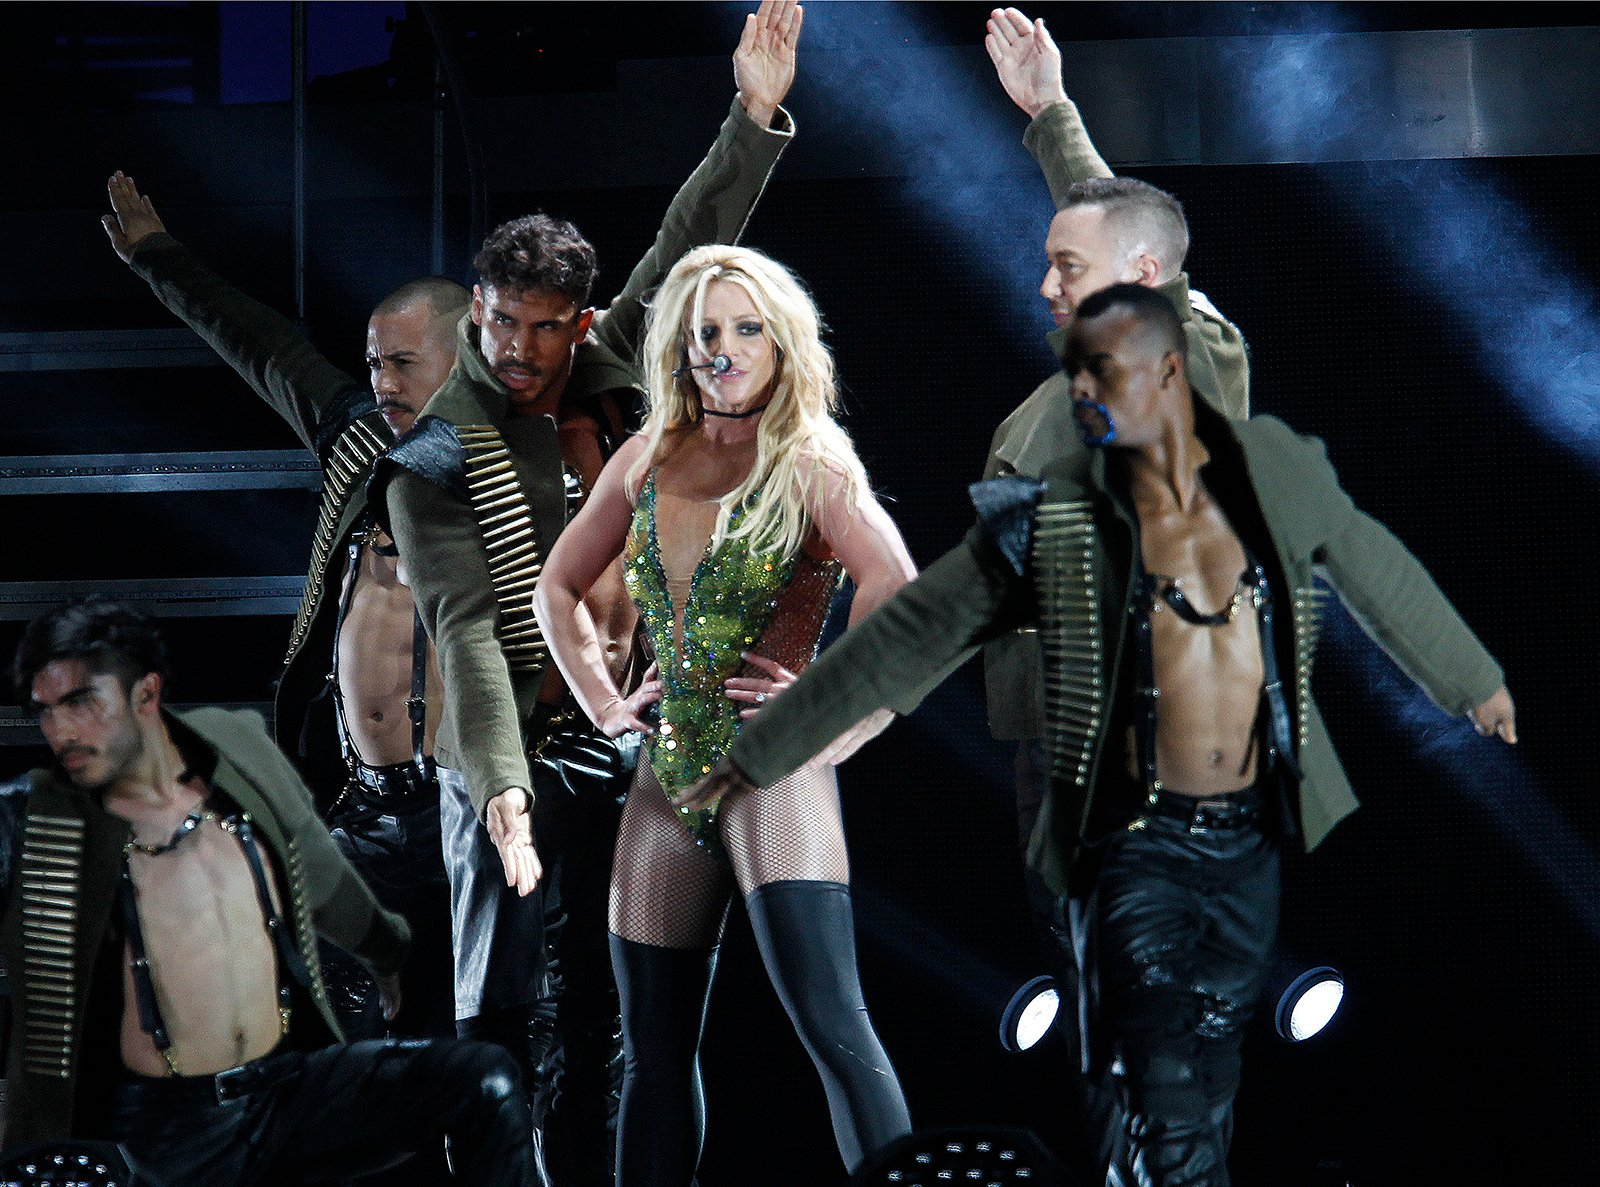 In this June 13, 2017, file photo, Britney Spears performs during her concert in Taipei, Taiwan. (AP Photo/Chiang Ying-ying, File)